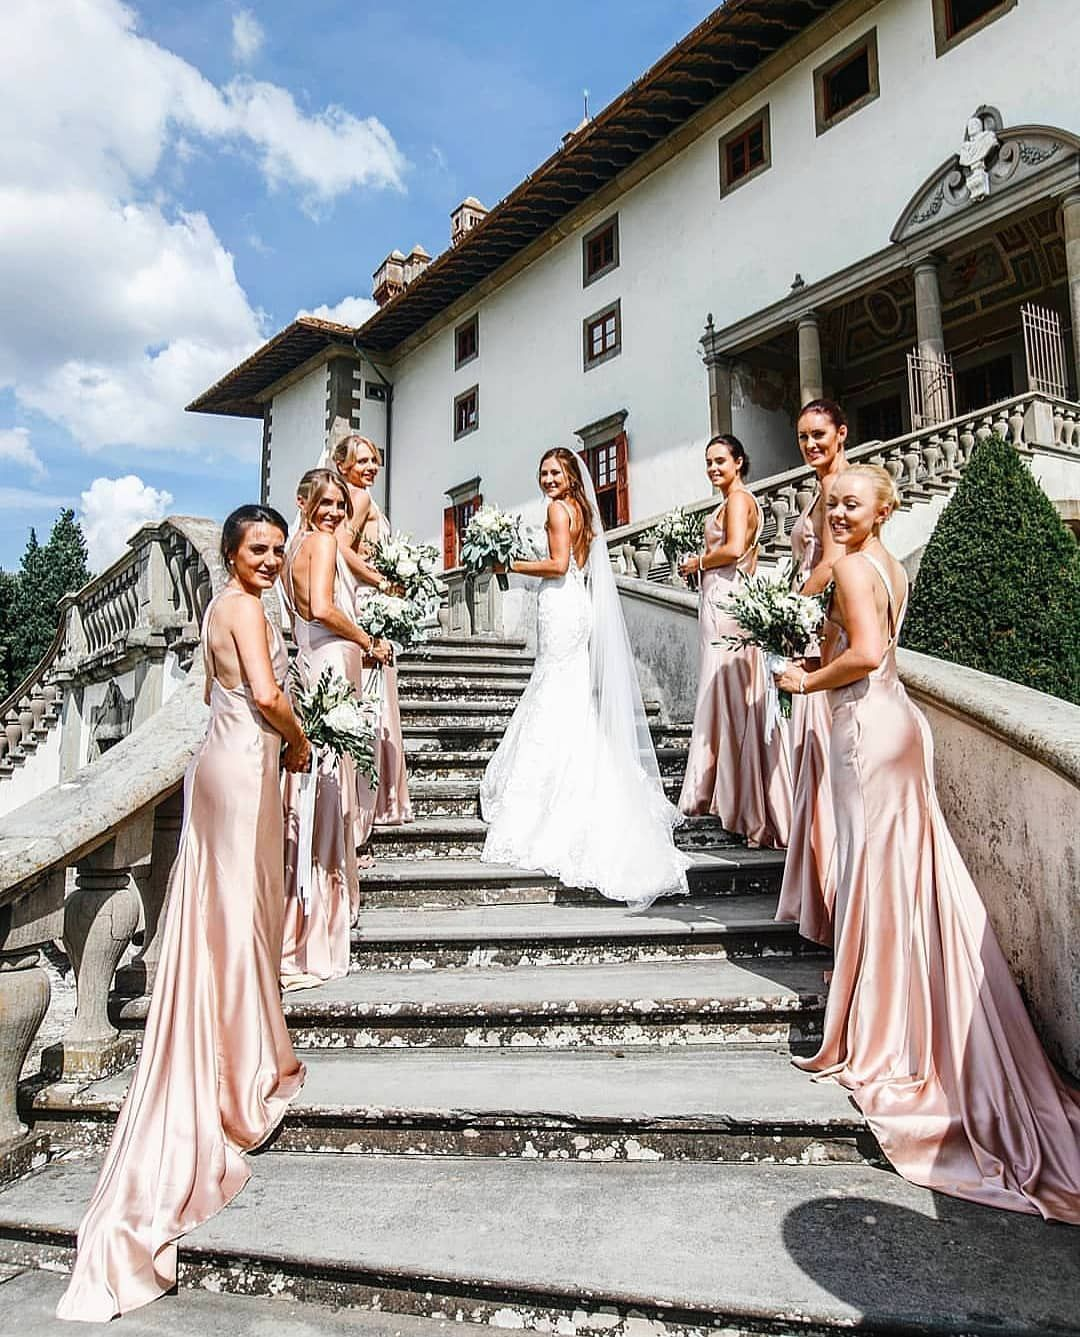 blush satin bridesmaid dresses with low back detail